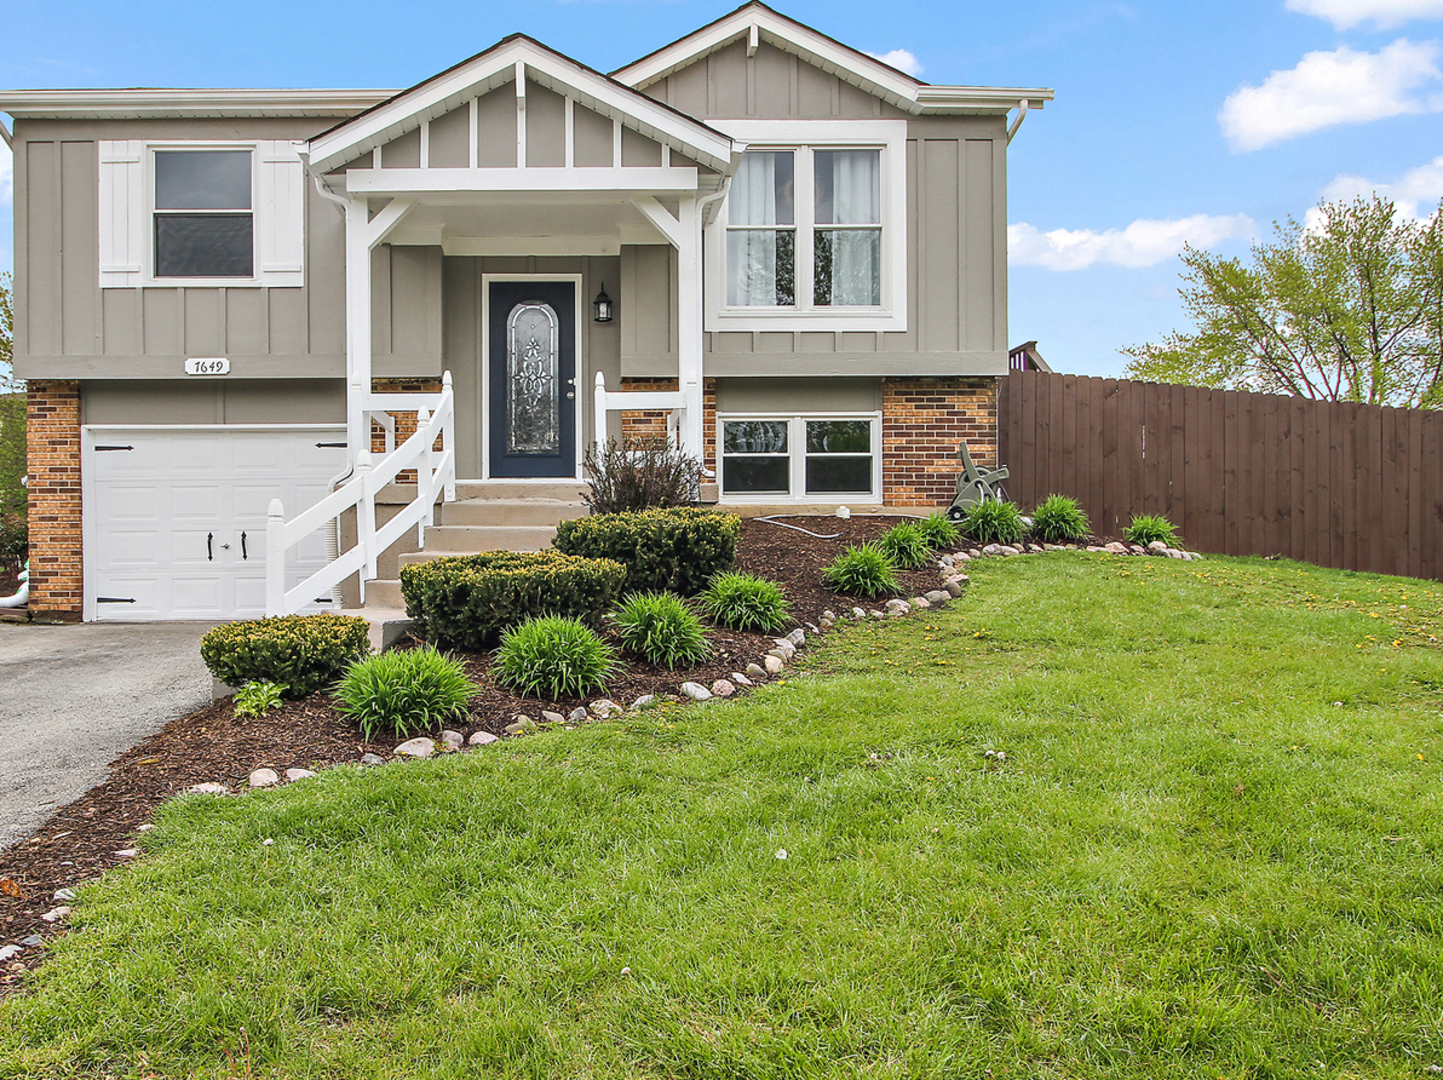 7649 West Moorefield Drive, Frankfort in Will County, IL 60423 Home for Sale